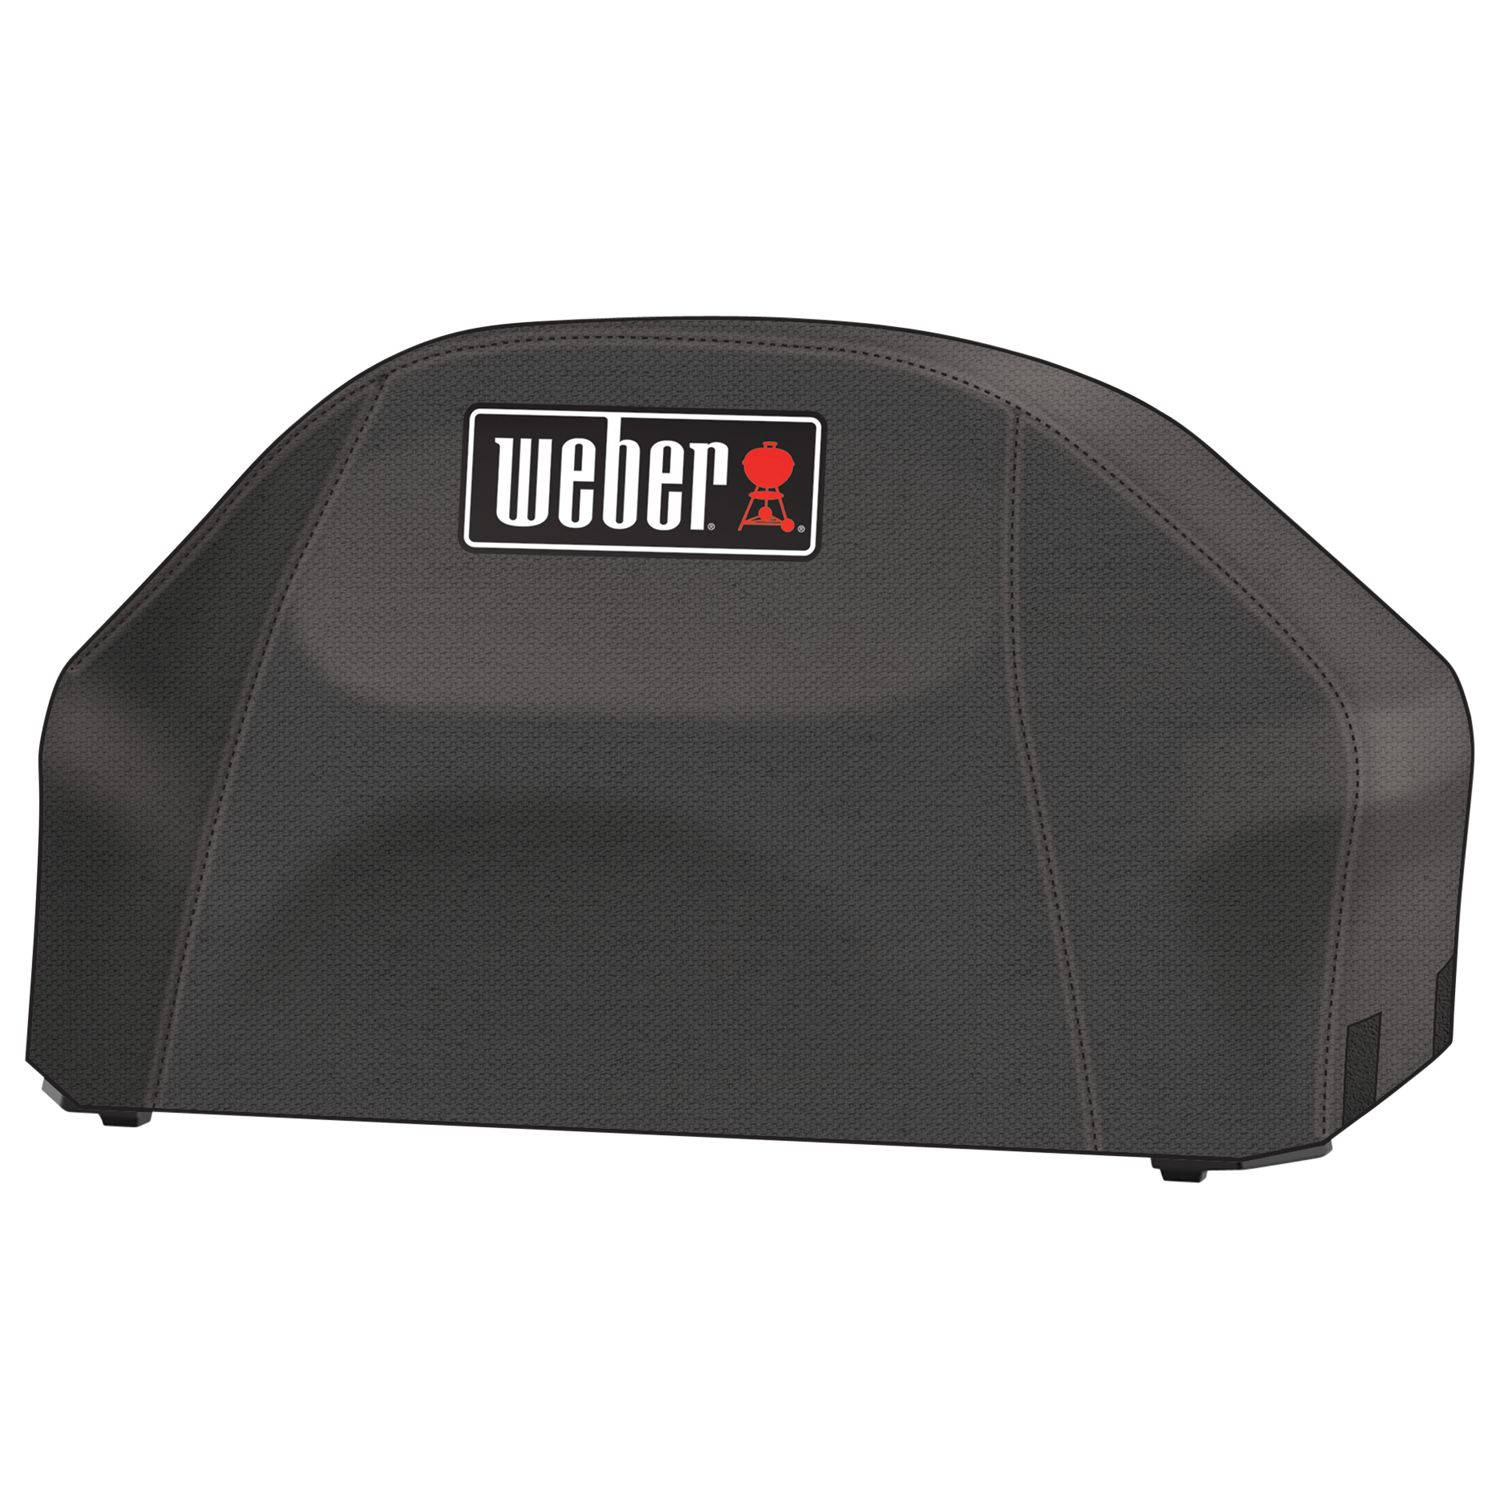 Weber Weber Pulse 1000 BBQ Cover, Black